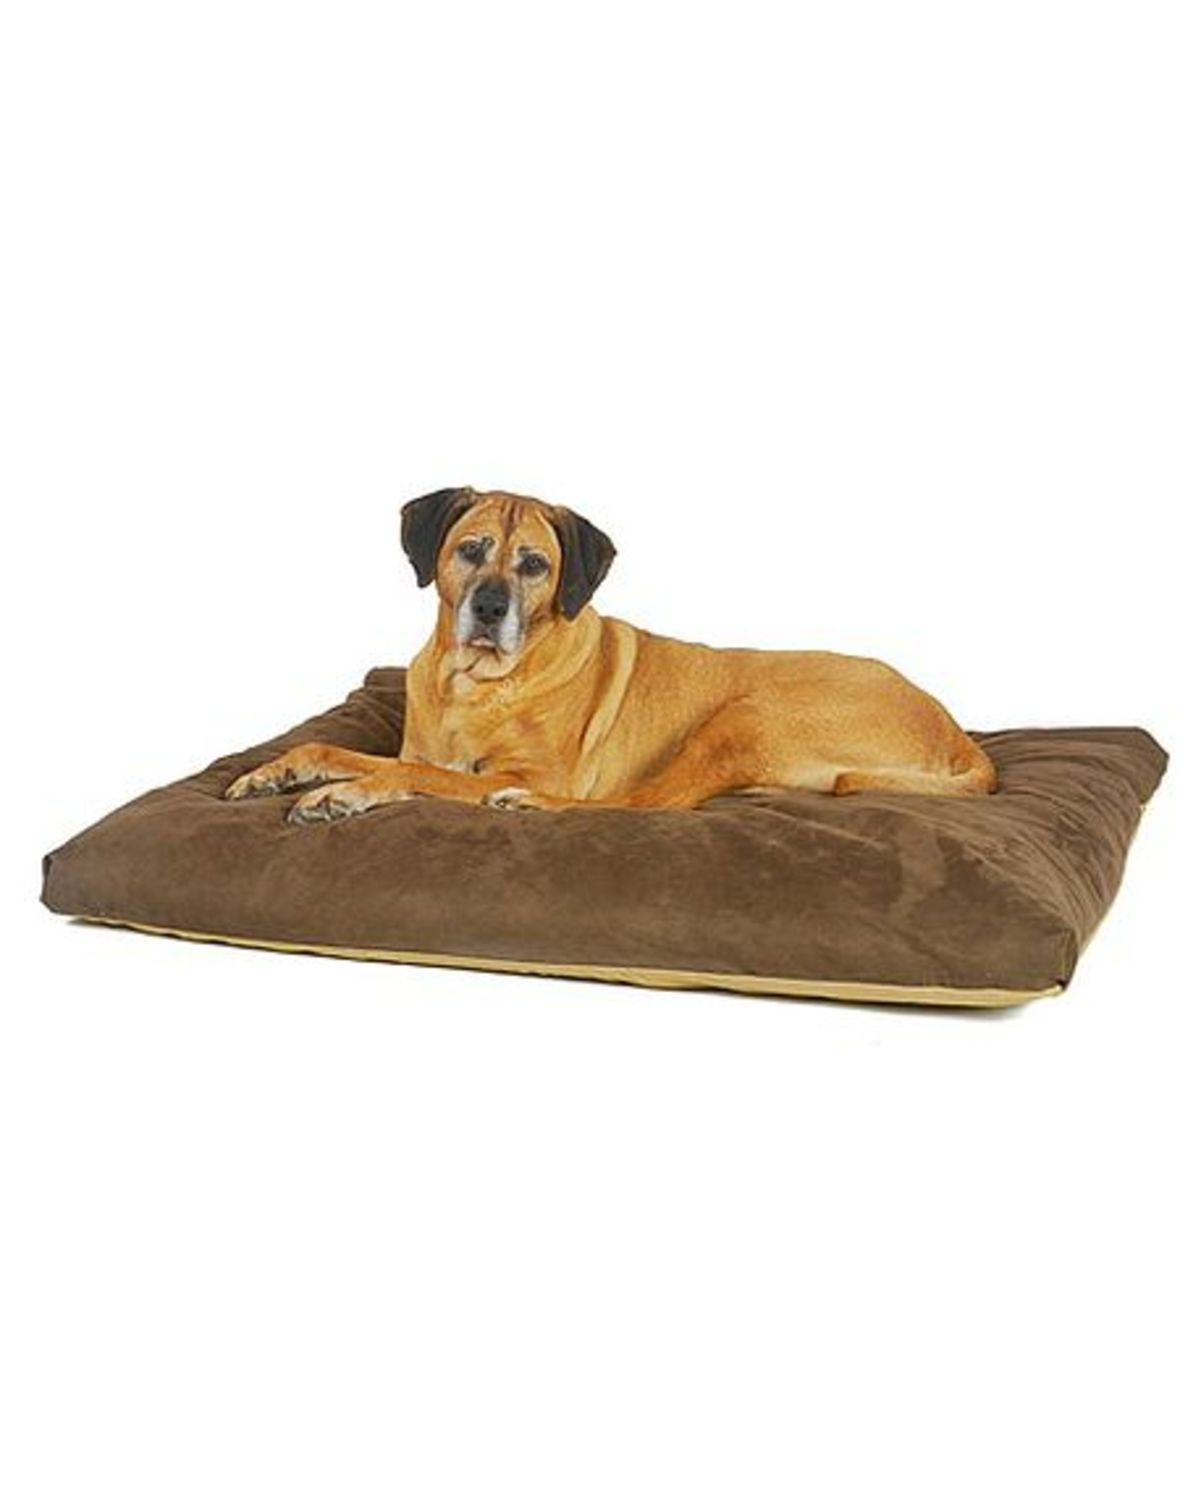 de luxe memory foam dog bed. Black Bedroom Furniture Sets. Home Design Ideas